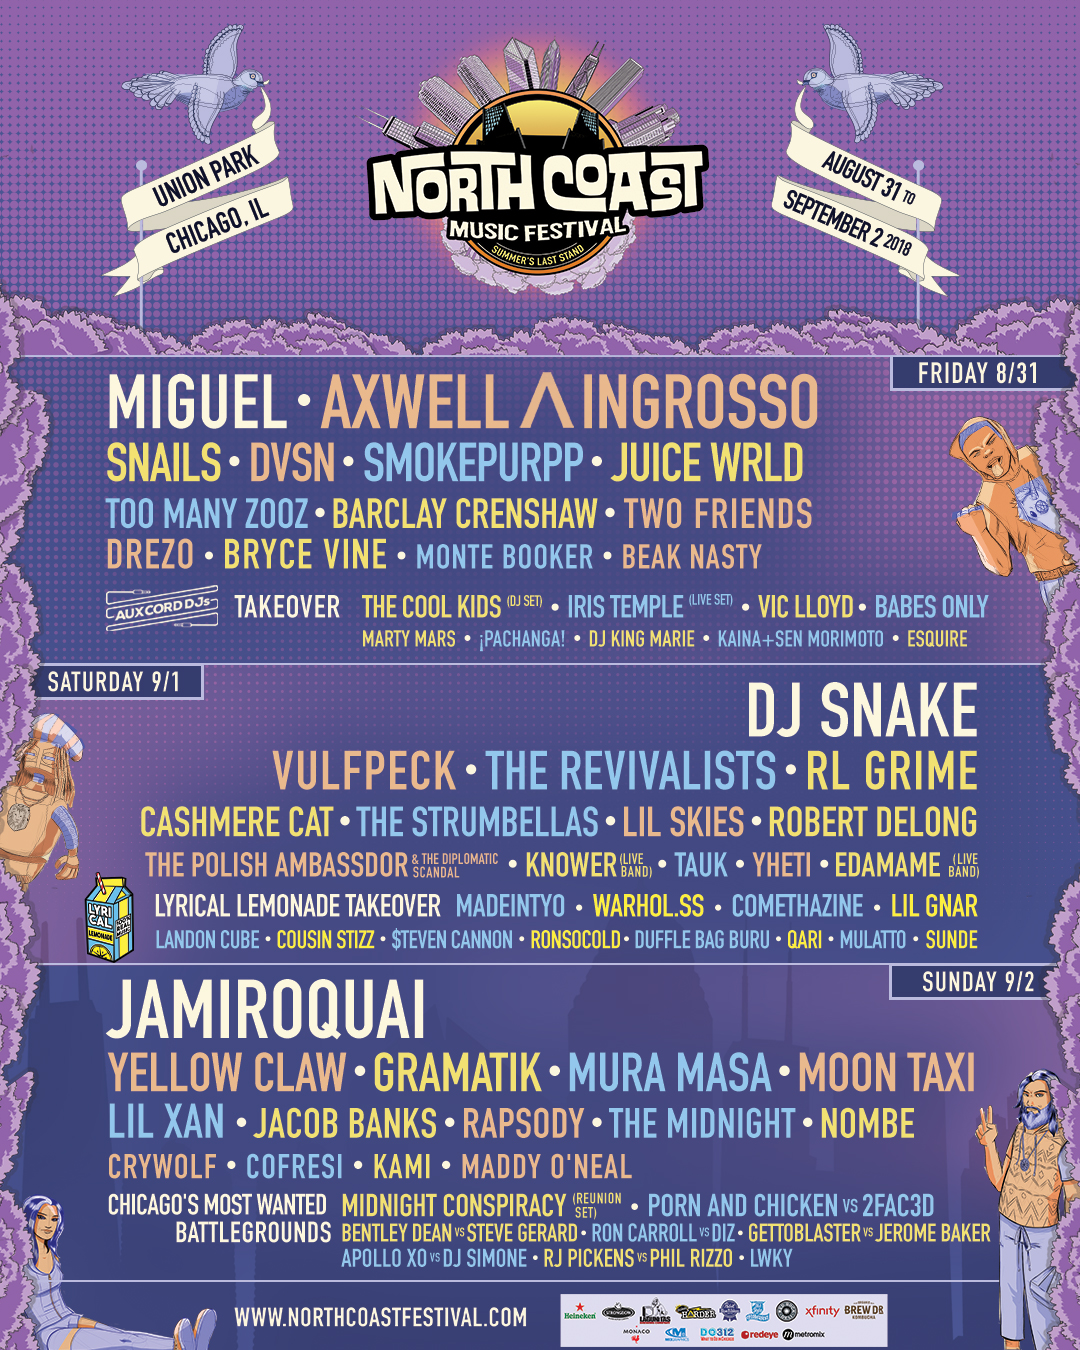 north coast 2018 music festival